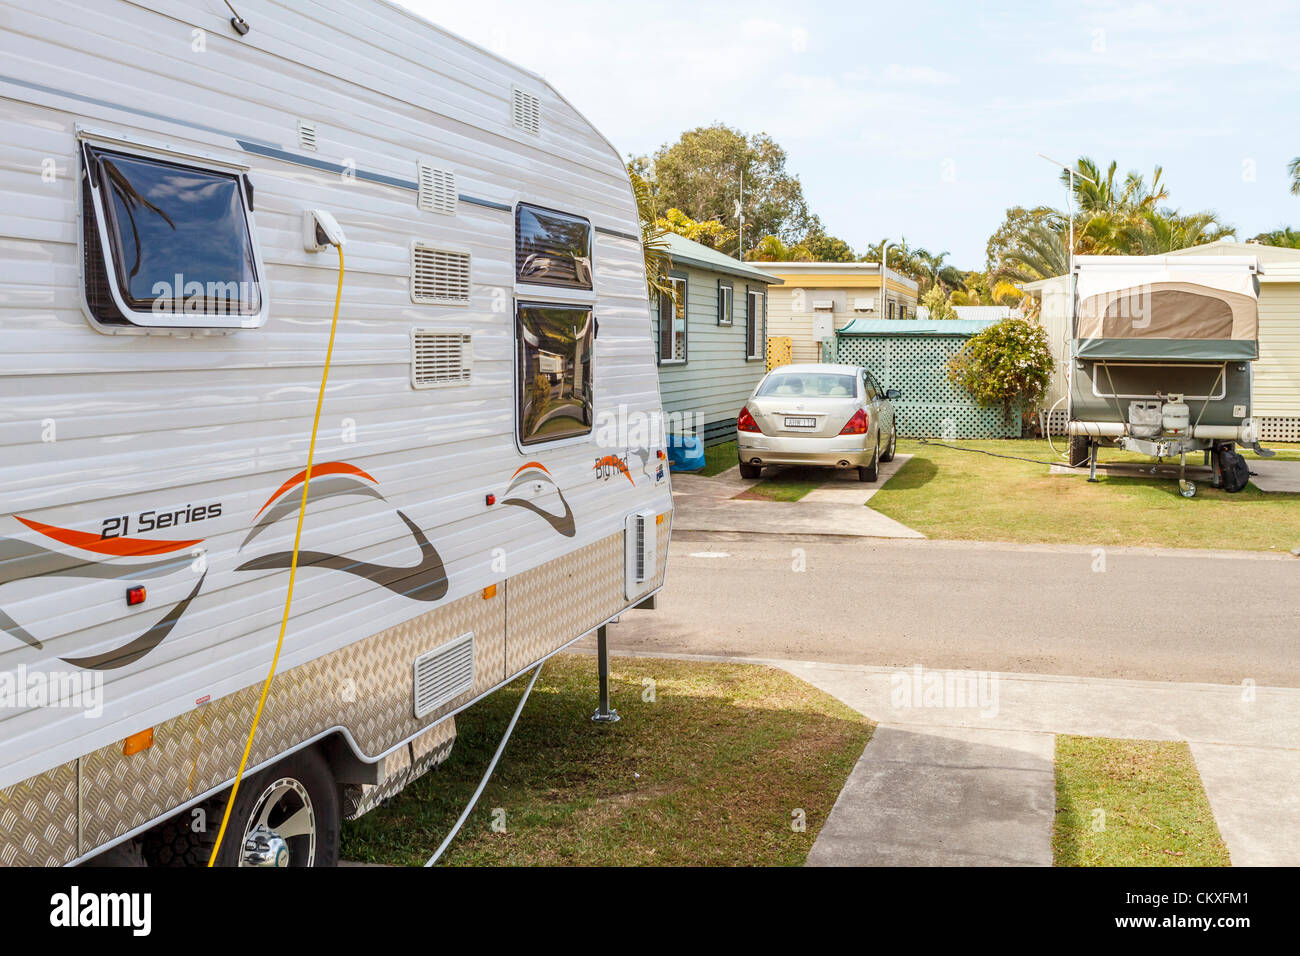 Maroochydore, Sunshine Coast, Queensland, Australia, 29th August 2012.   Caravans at a Sunshine Coast caravan park. - Stock Image